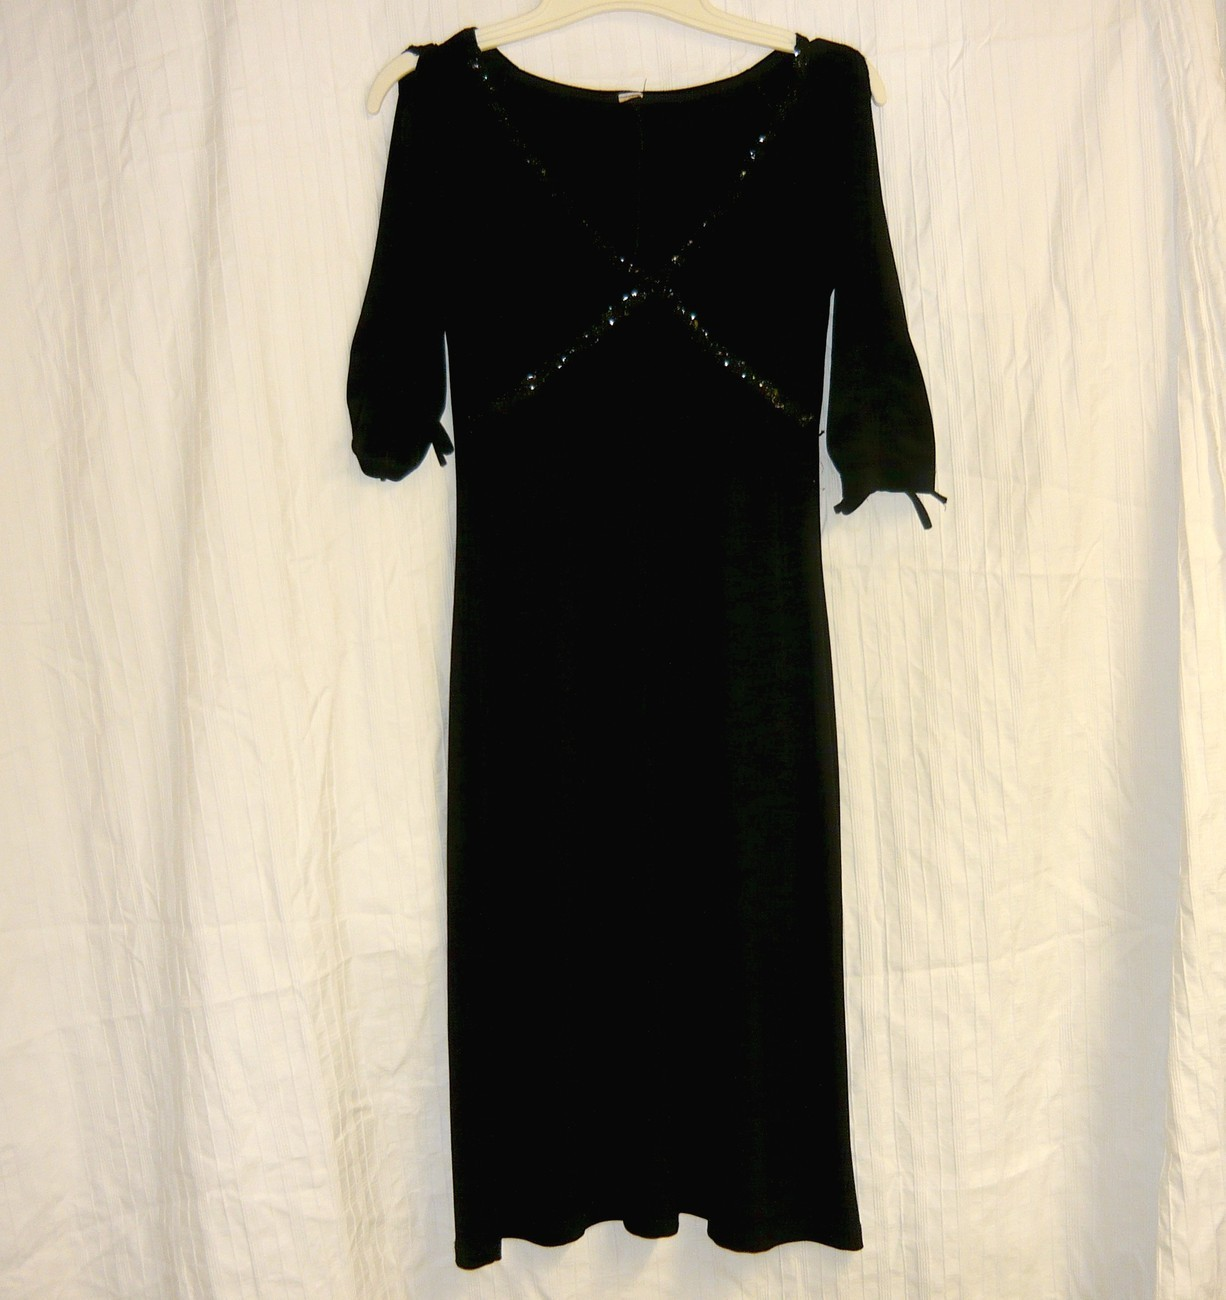 black beaded  empire vintage cocktail dress Sm. Bonanza